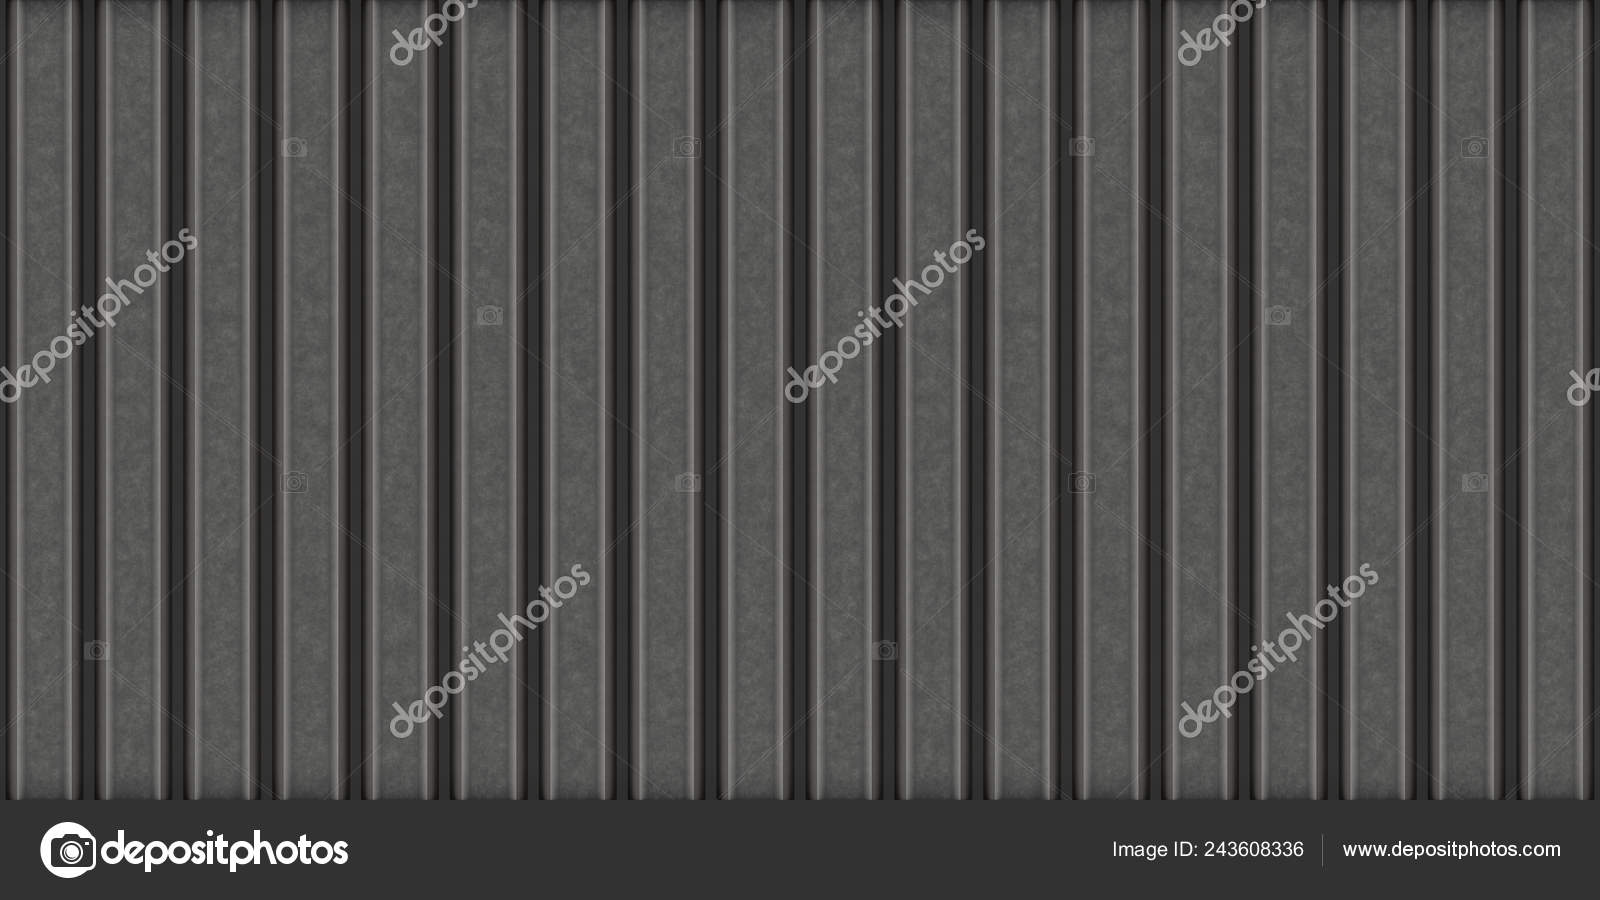 Corrugated Metal Sheet Texture Dark Metal Fence Covering